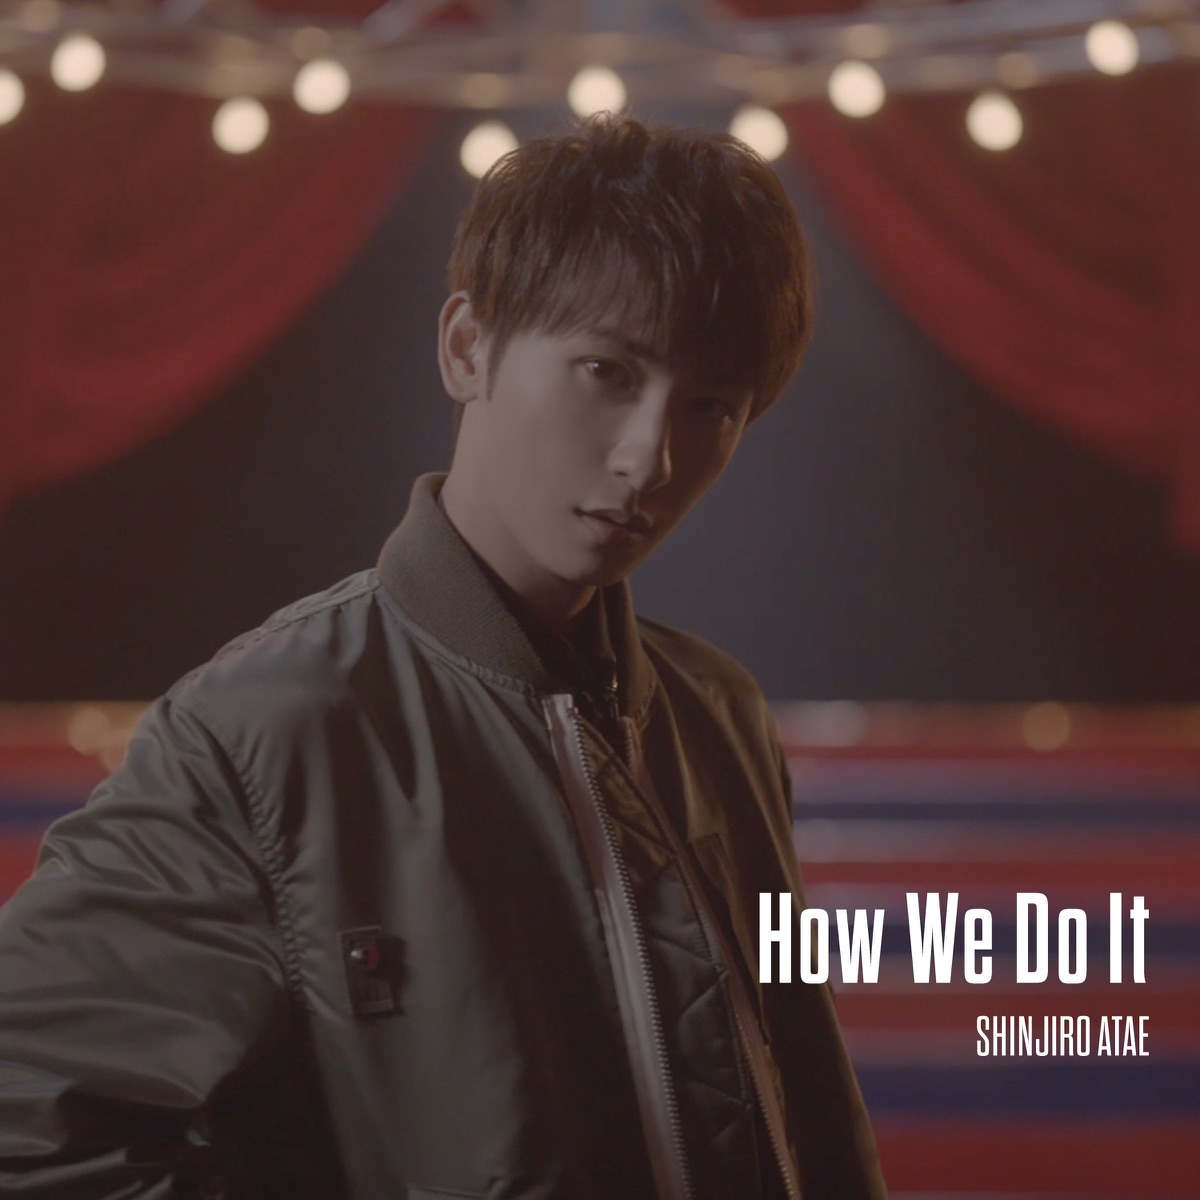 『SHINJIRO ATAE (from AAA) - How We Do It』収録の『How We Do It』ジャケット